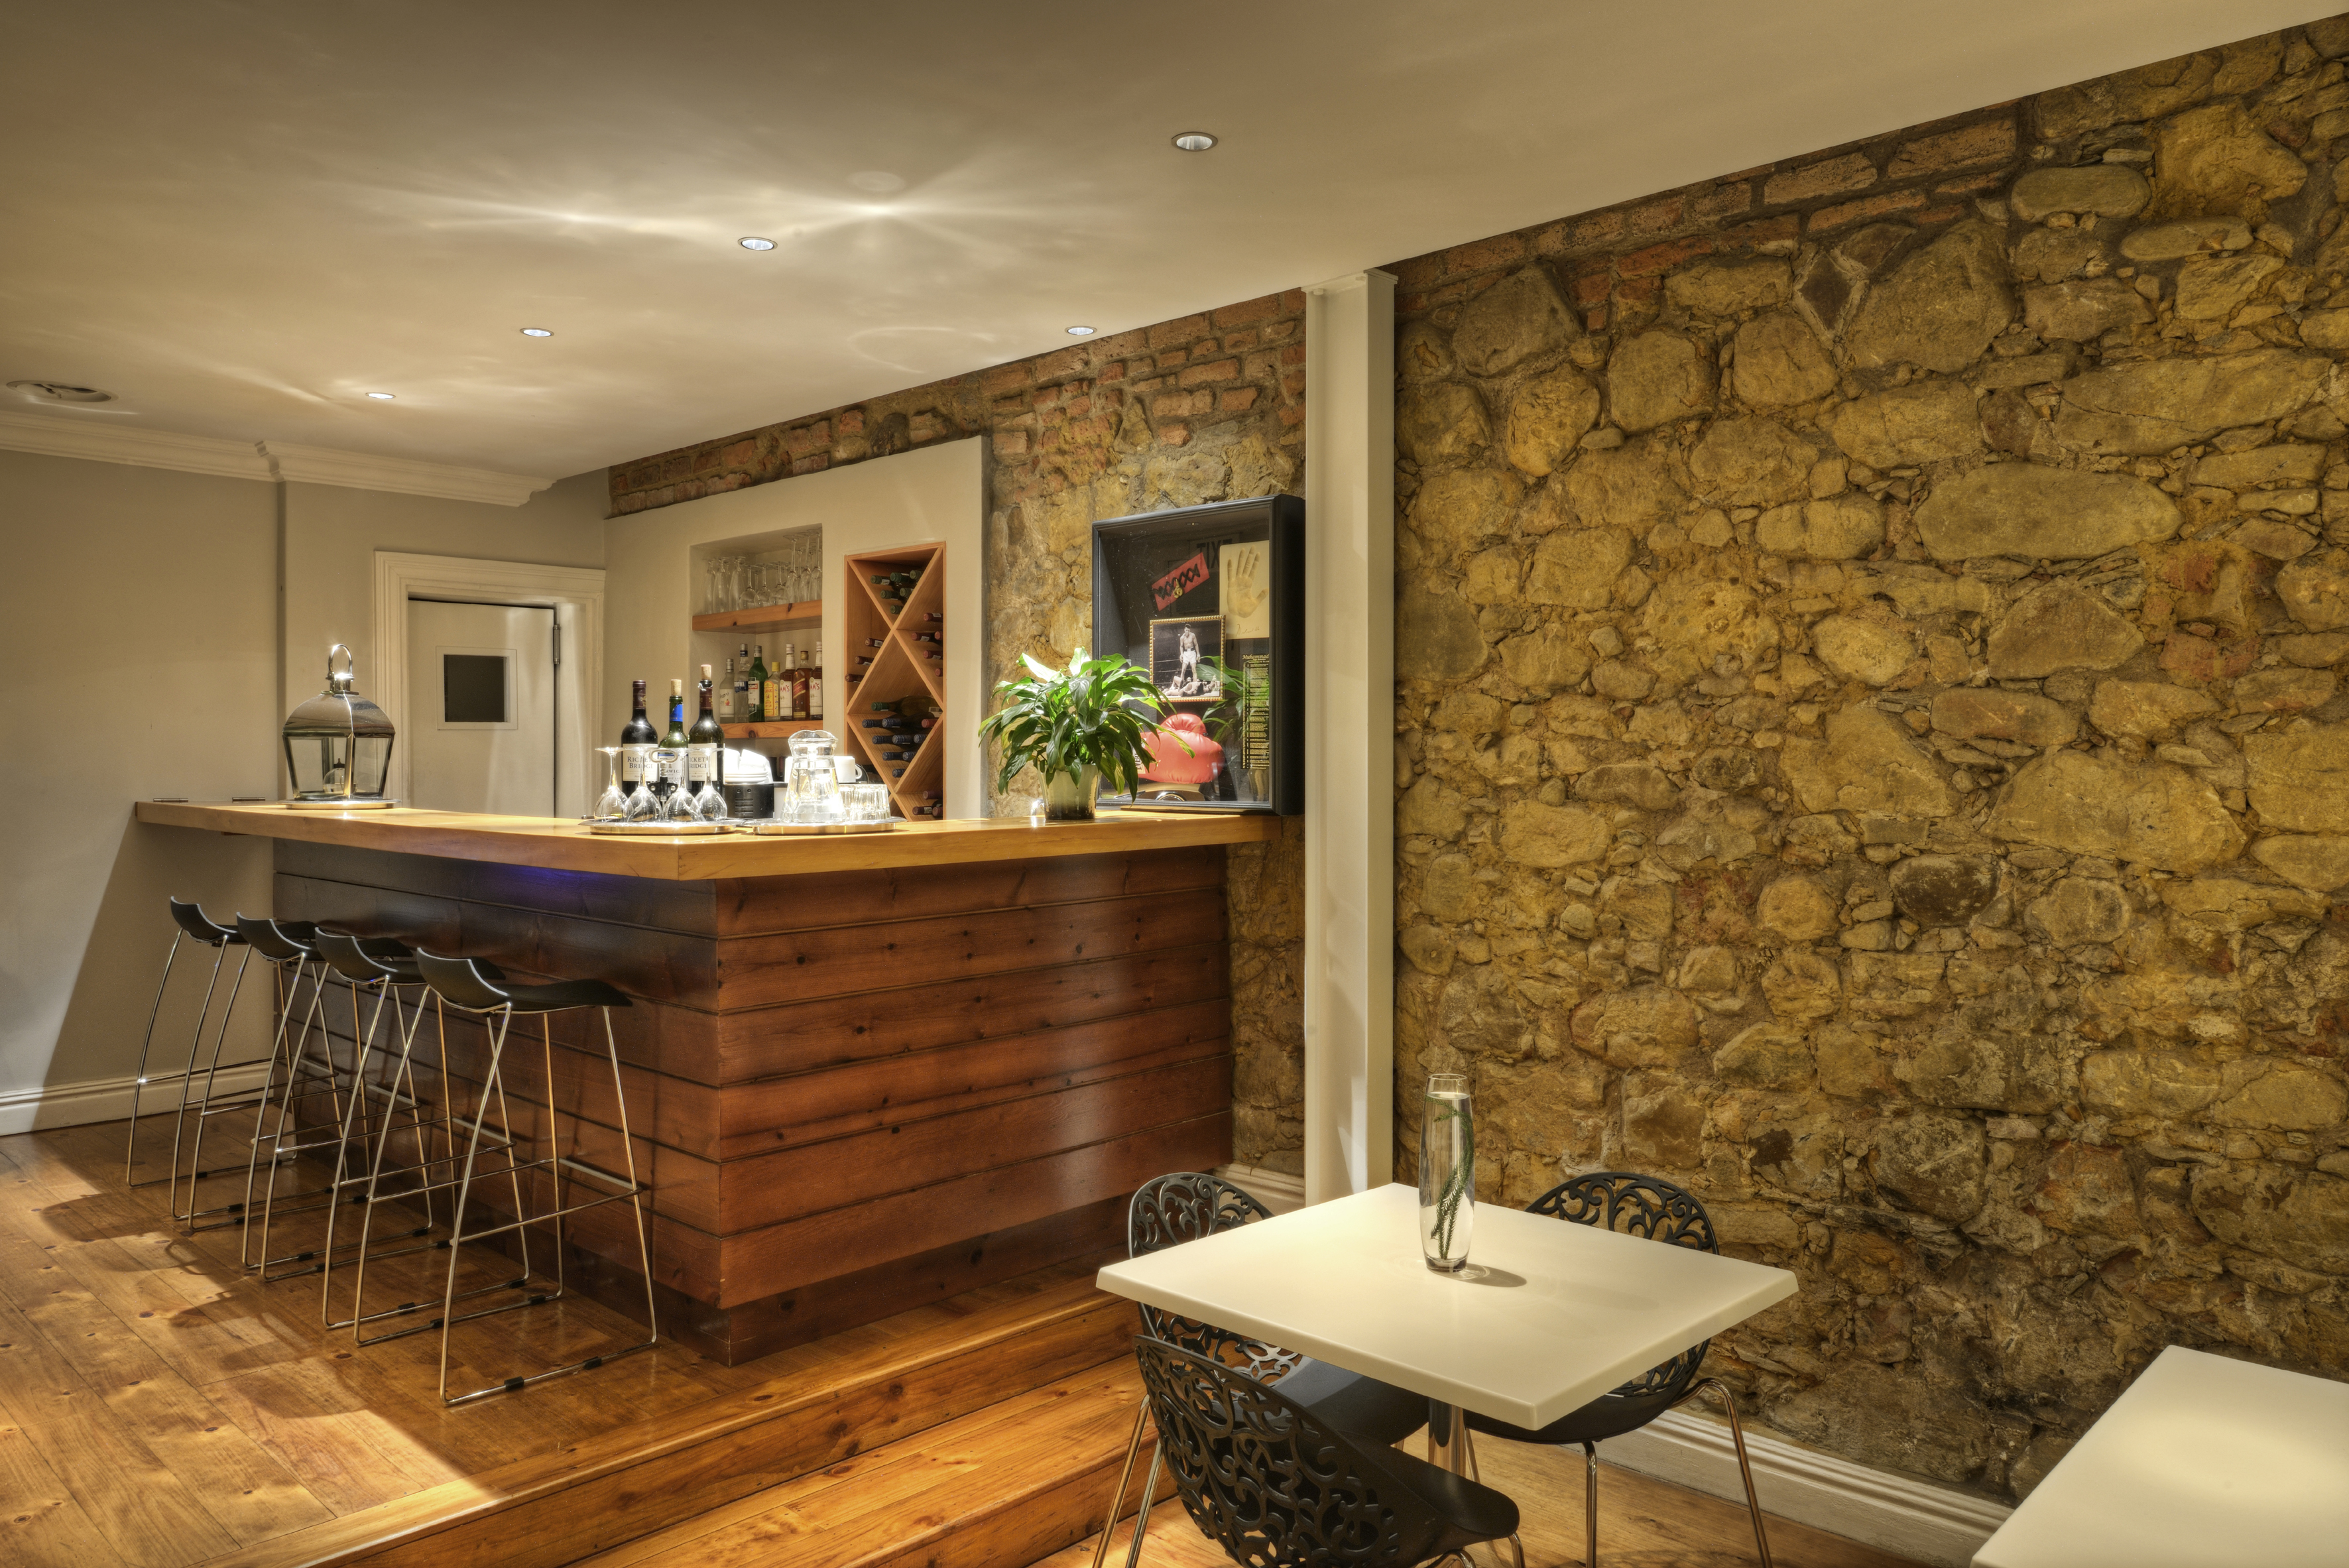 The bar at The Three Boutique Hotel, Gardens District of Cape Town